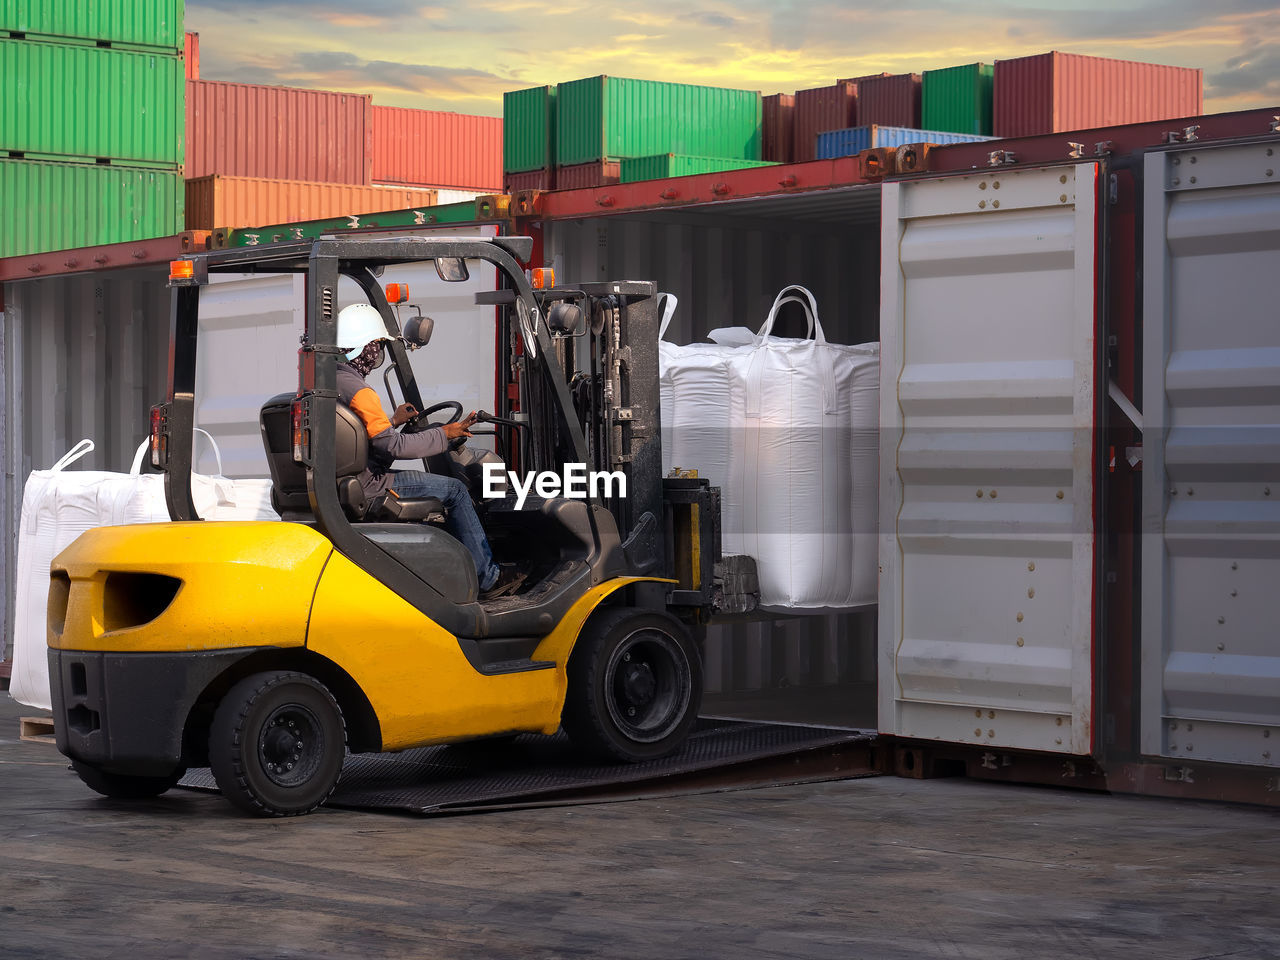 mode of transportation, transportation, land vehicle, architecture, day, freight transportation, container, no people, built structure, outdoors, orange color, truck, industry, motor vehicle, forklift, box, box - container, cargo container, business, large group of objects